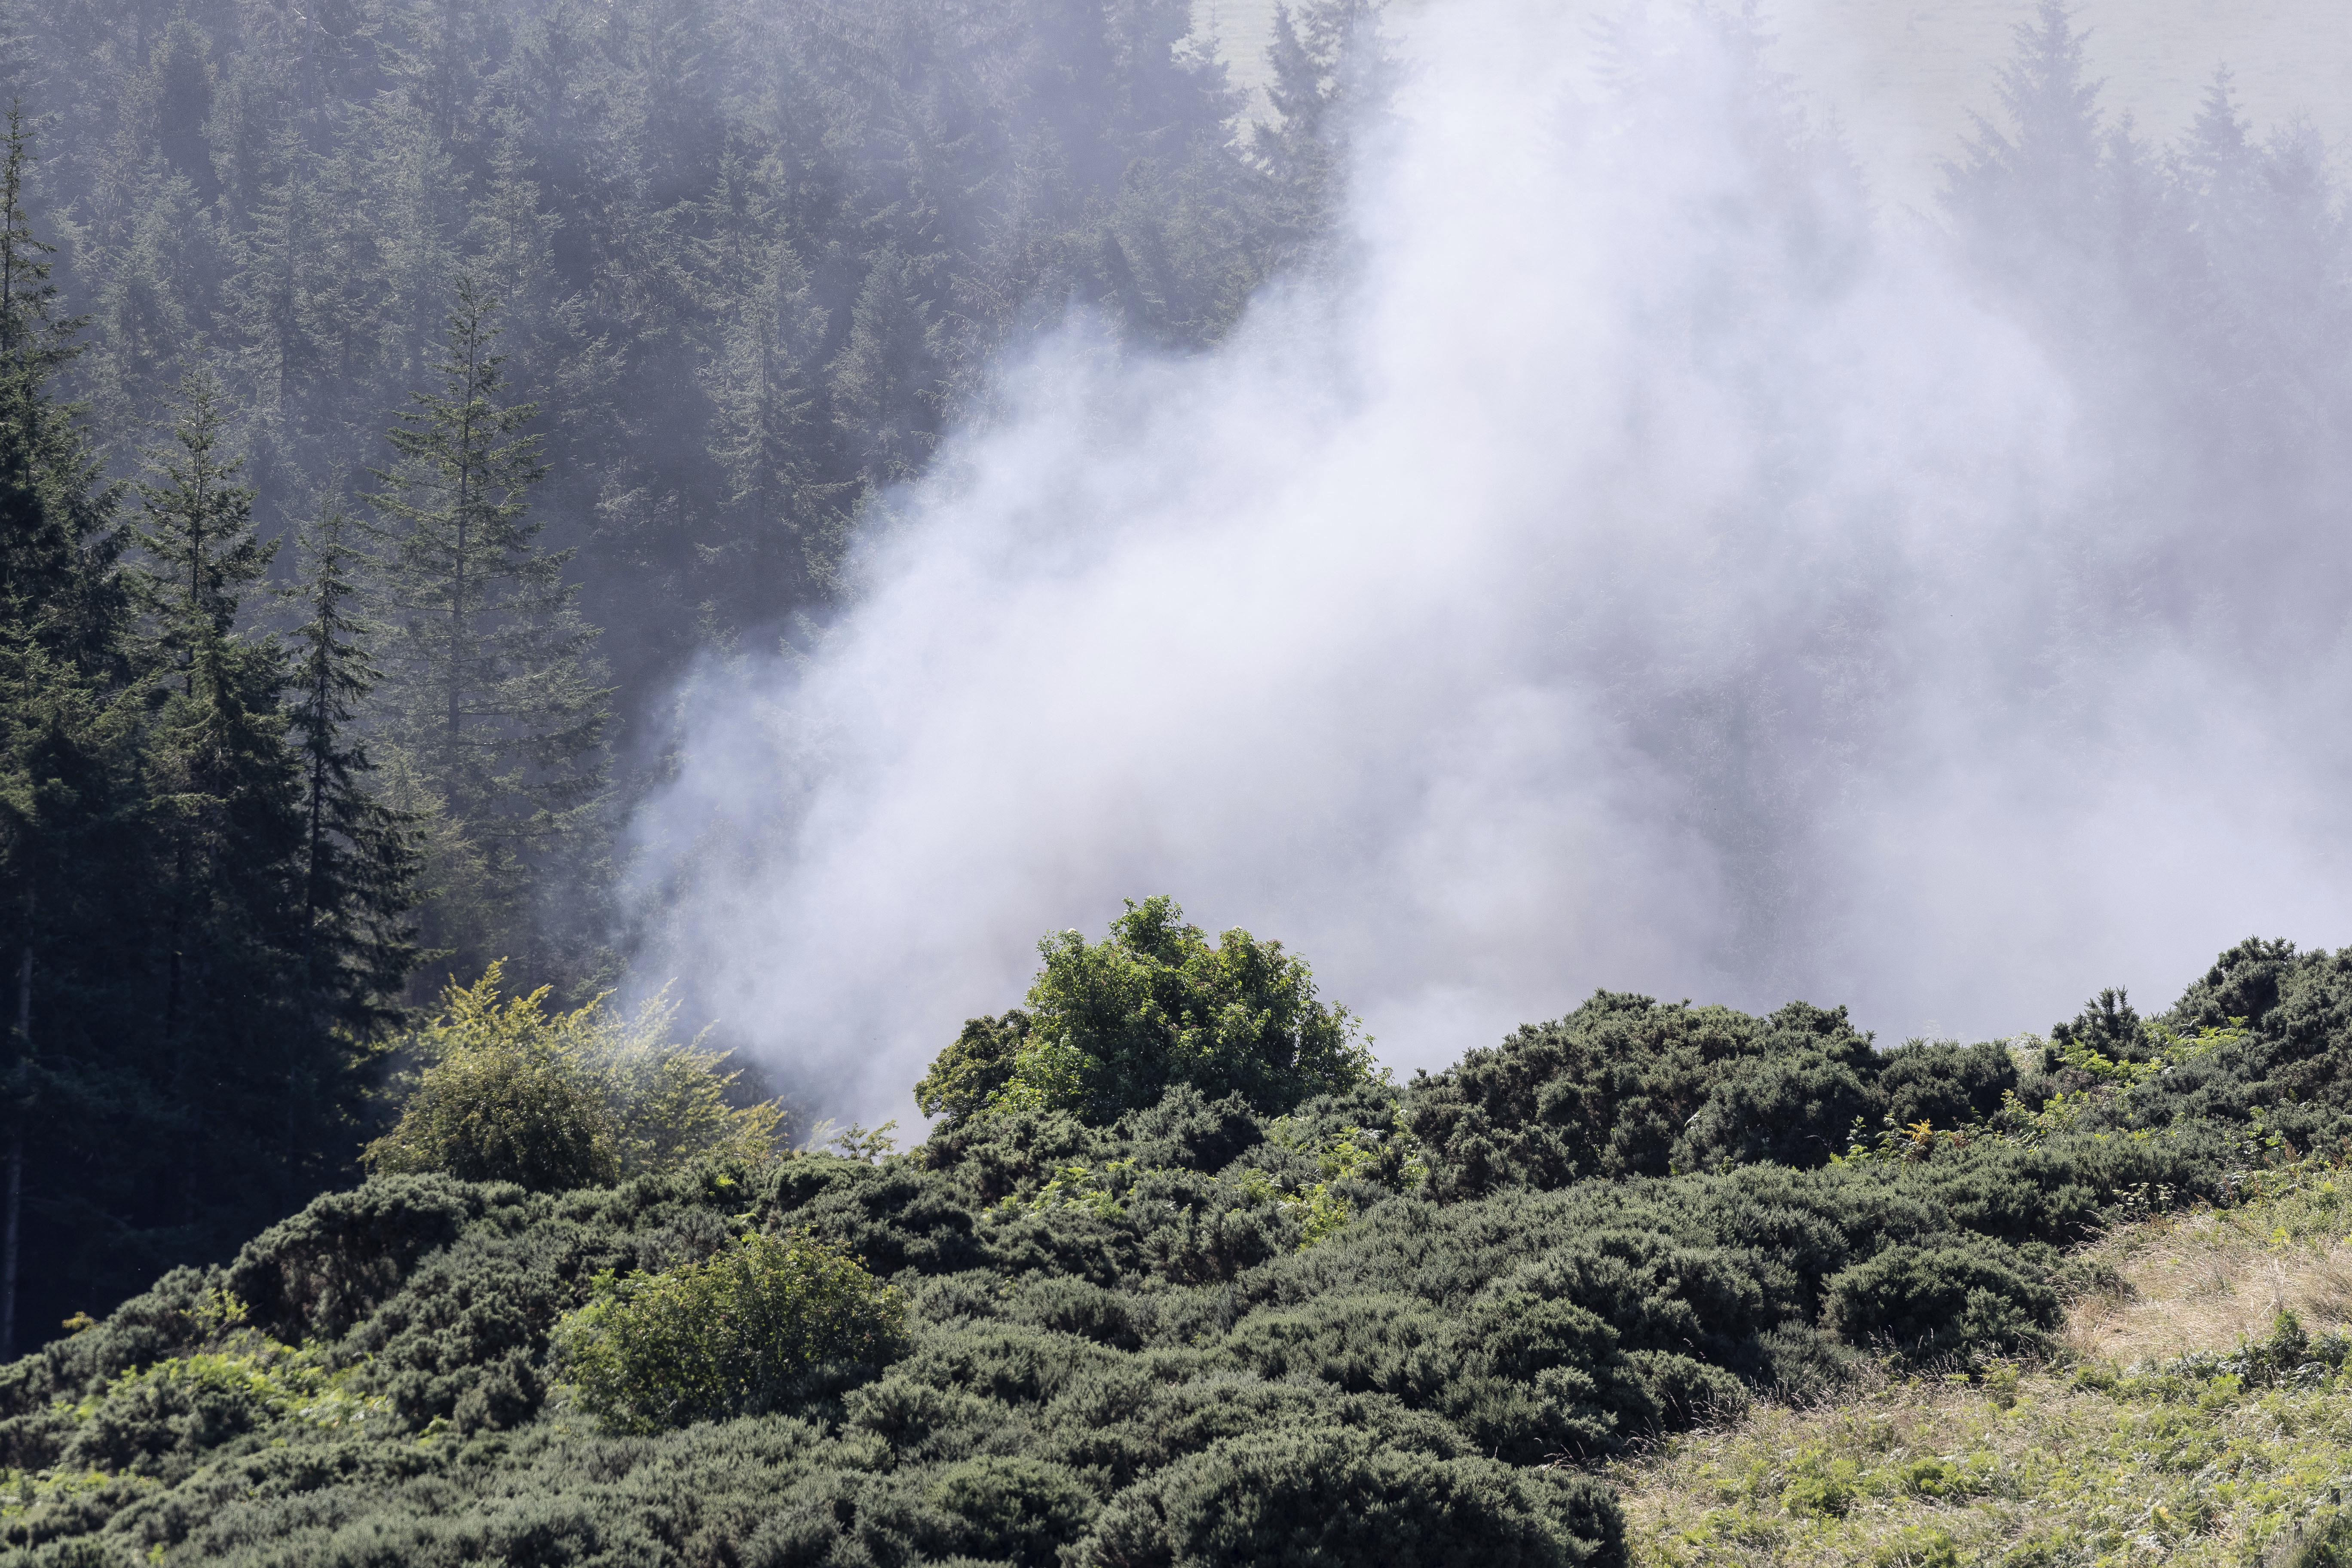 Smoke billows from the scene of a derailed train in Stonehaven, Scotland, Wednesday Aug. 12, 2020. Police and paramedics were responding Wednesday to a train derailment in northeast Scotland, where smoke could be seen rising from the site. Officials said there were reports of serious injuries. The hilly area was hit by storms and flash flooding overnight. (Derek Ironside/Newsline-media via AP)